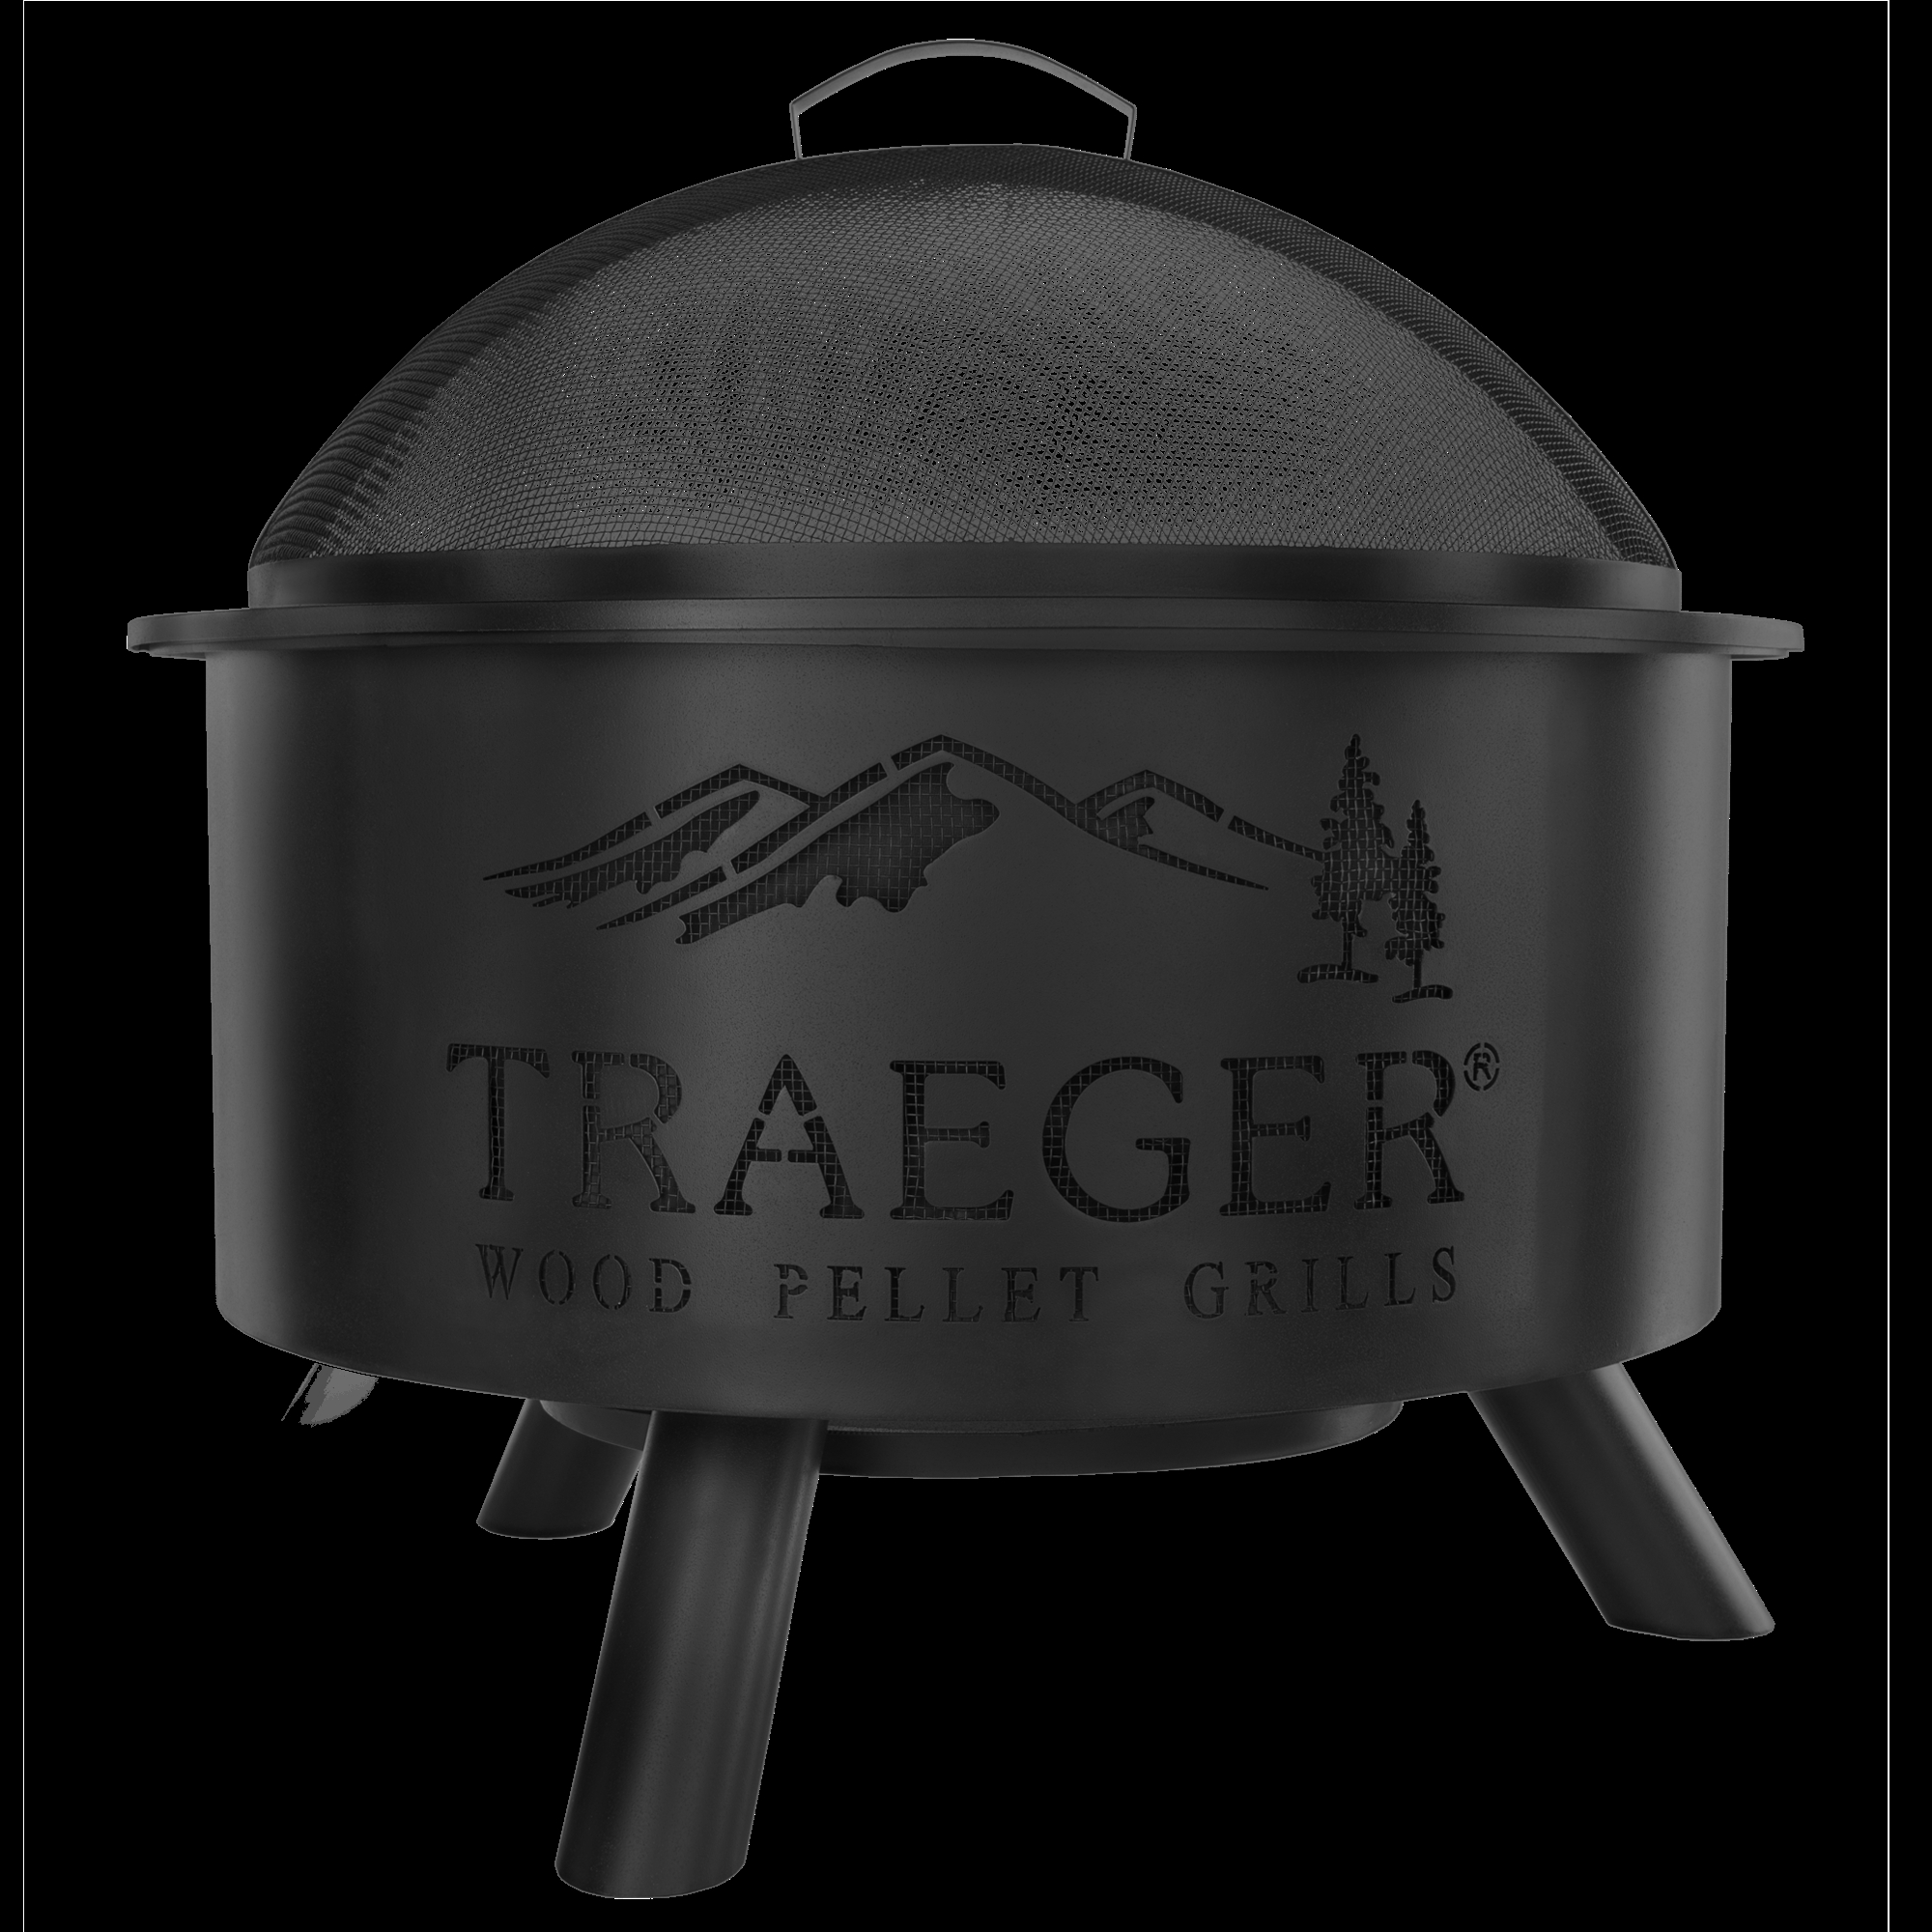 Outdoor Fire Pit Traeger Style Traeger Wood Fired Grills throughout dimensions 2000 X 2000